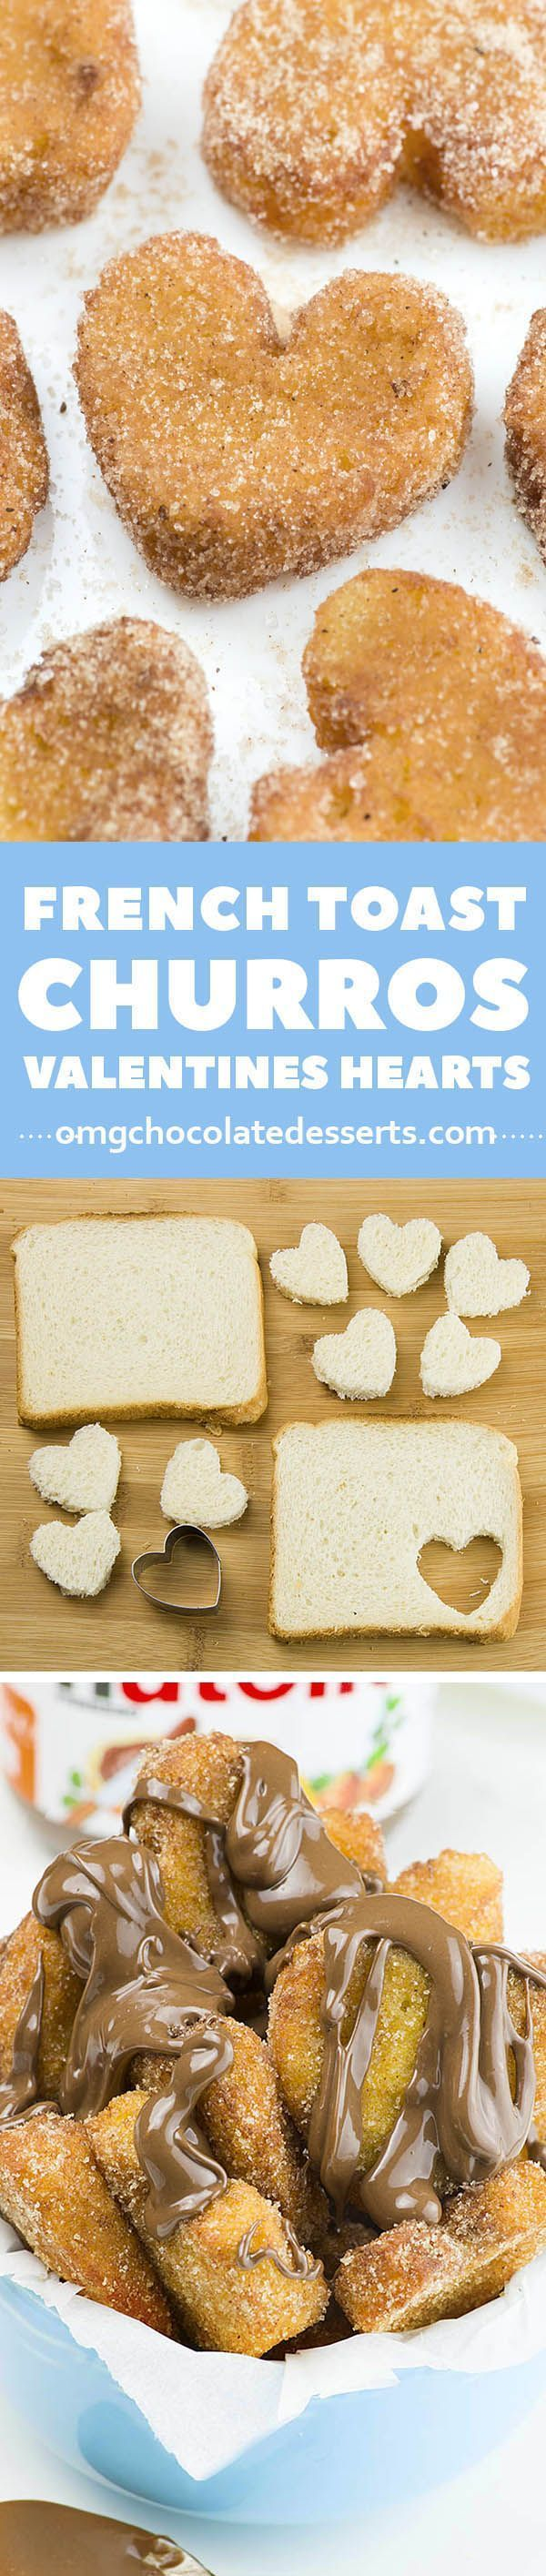 17 best images about holiday valentine 39 s day on for Easy romantic meals to cook for him